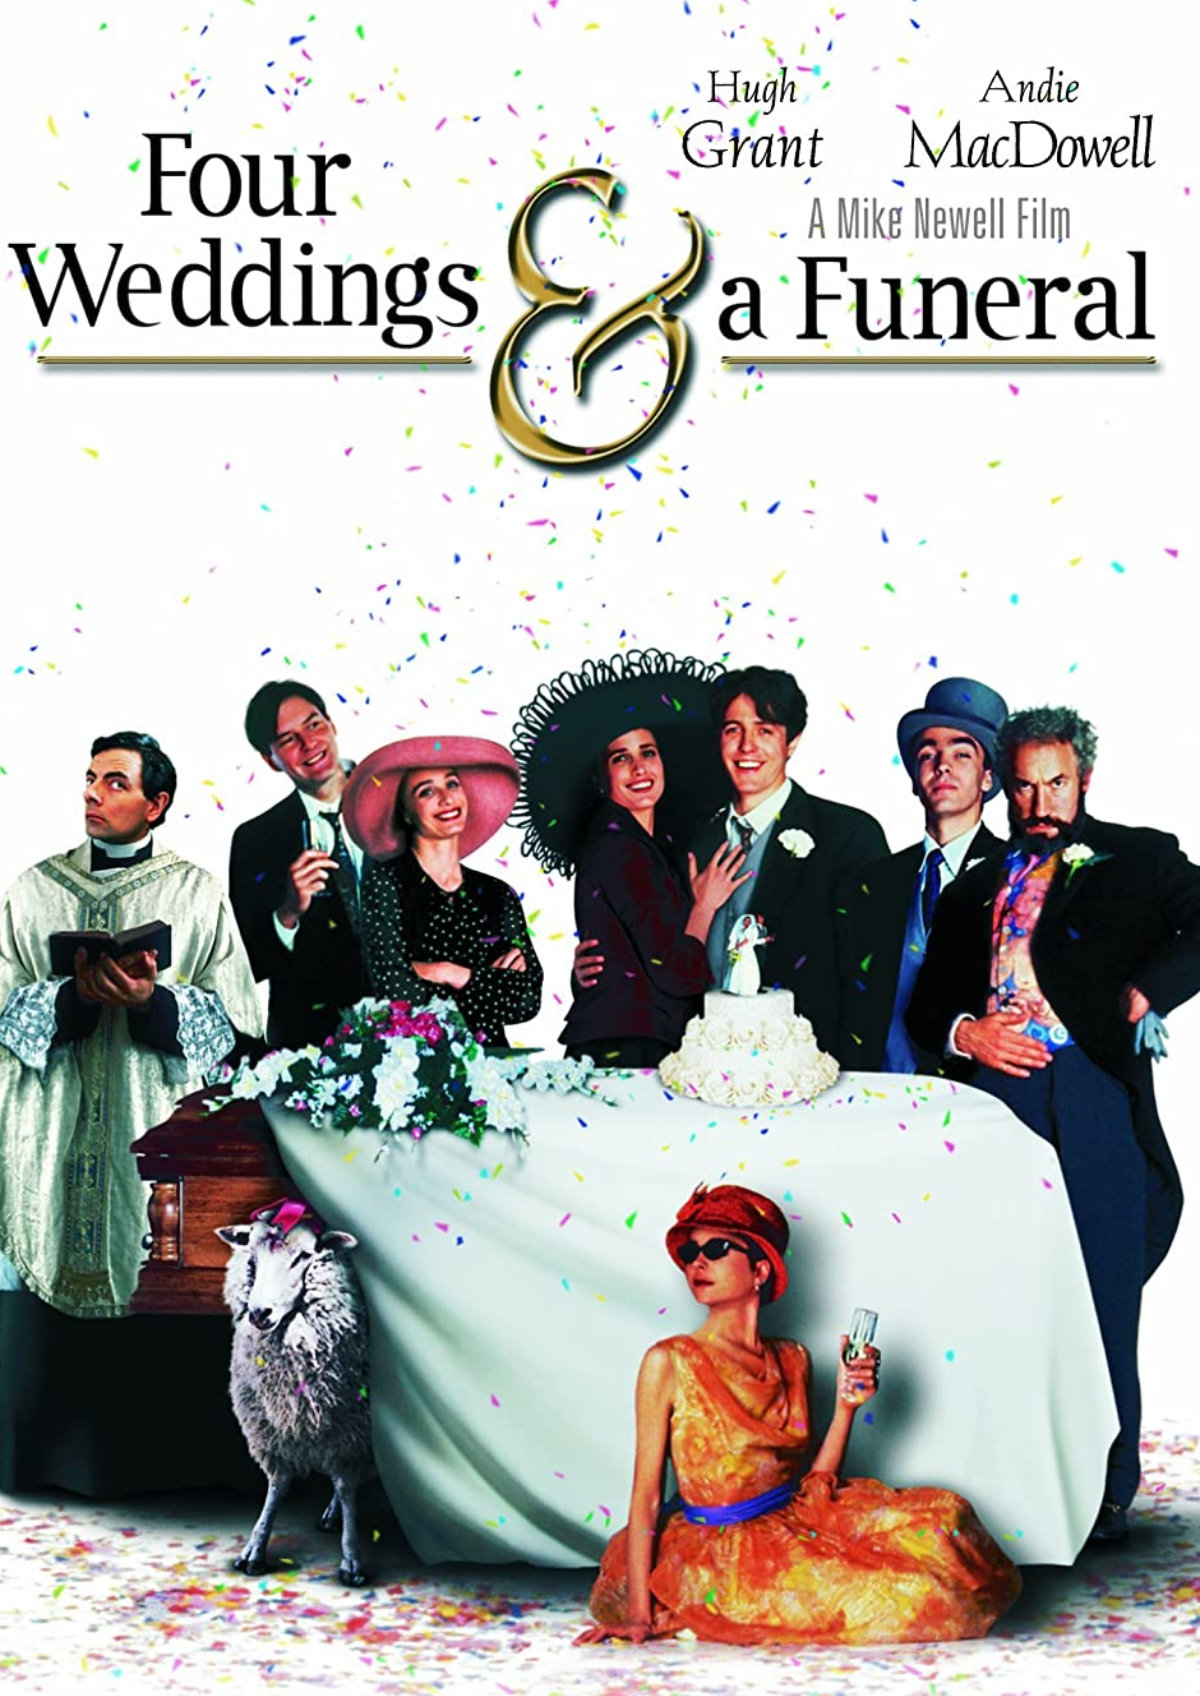 'Four Weddings and a Funeral' movie poster